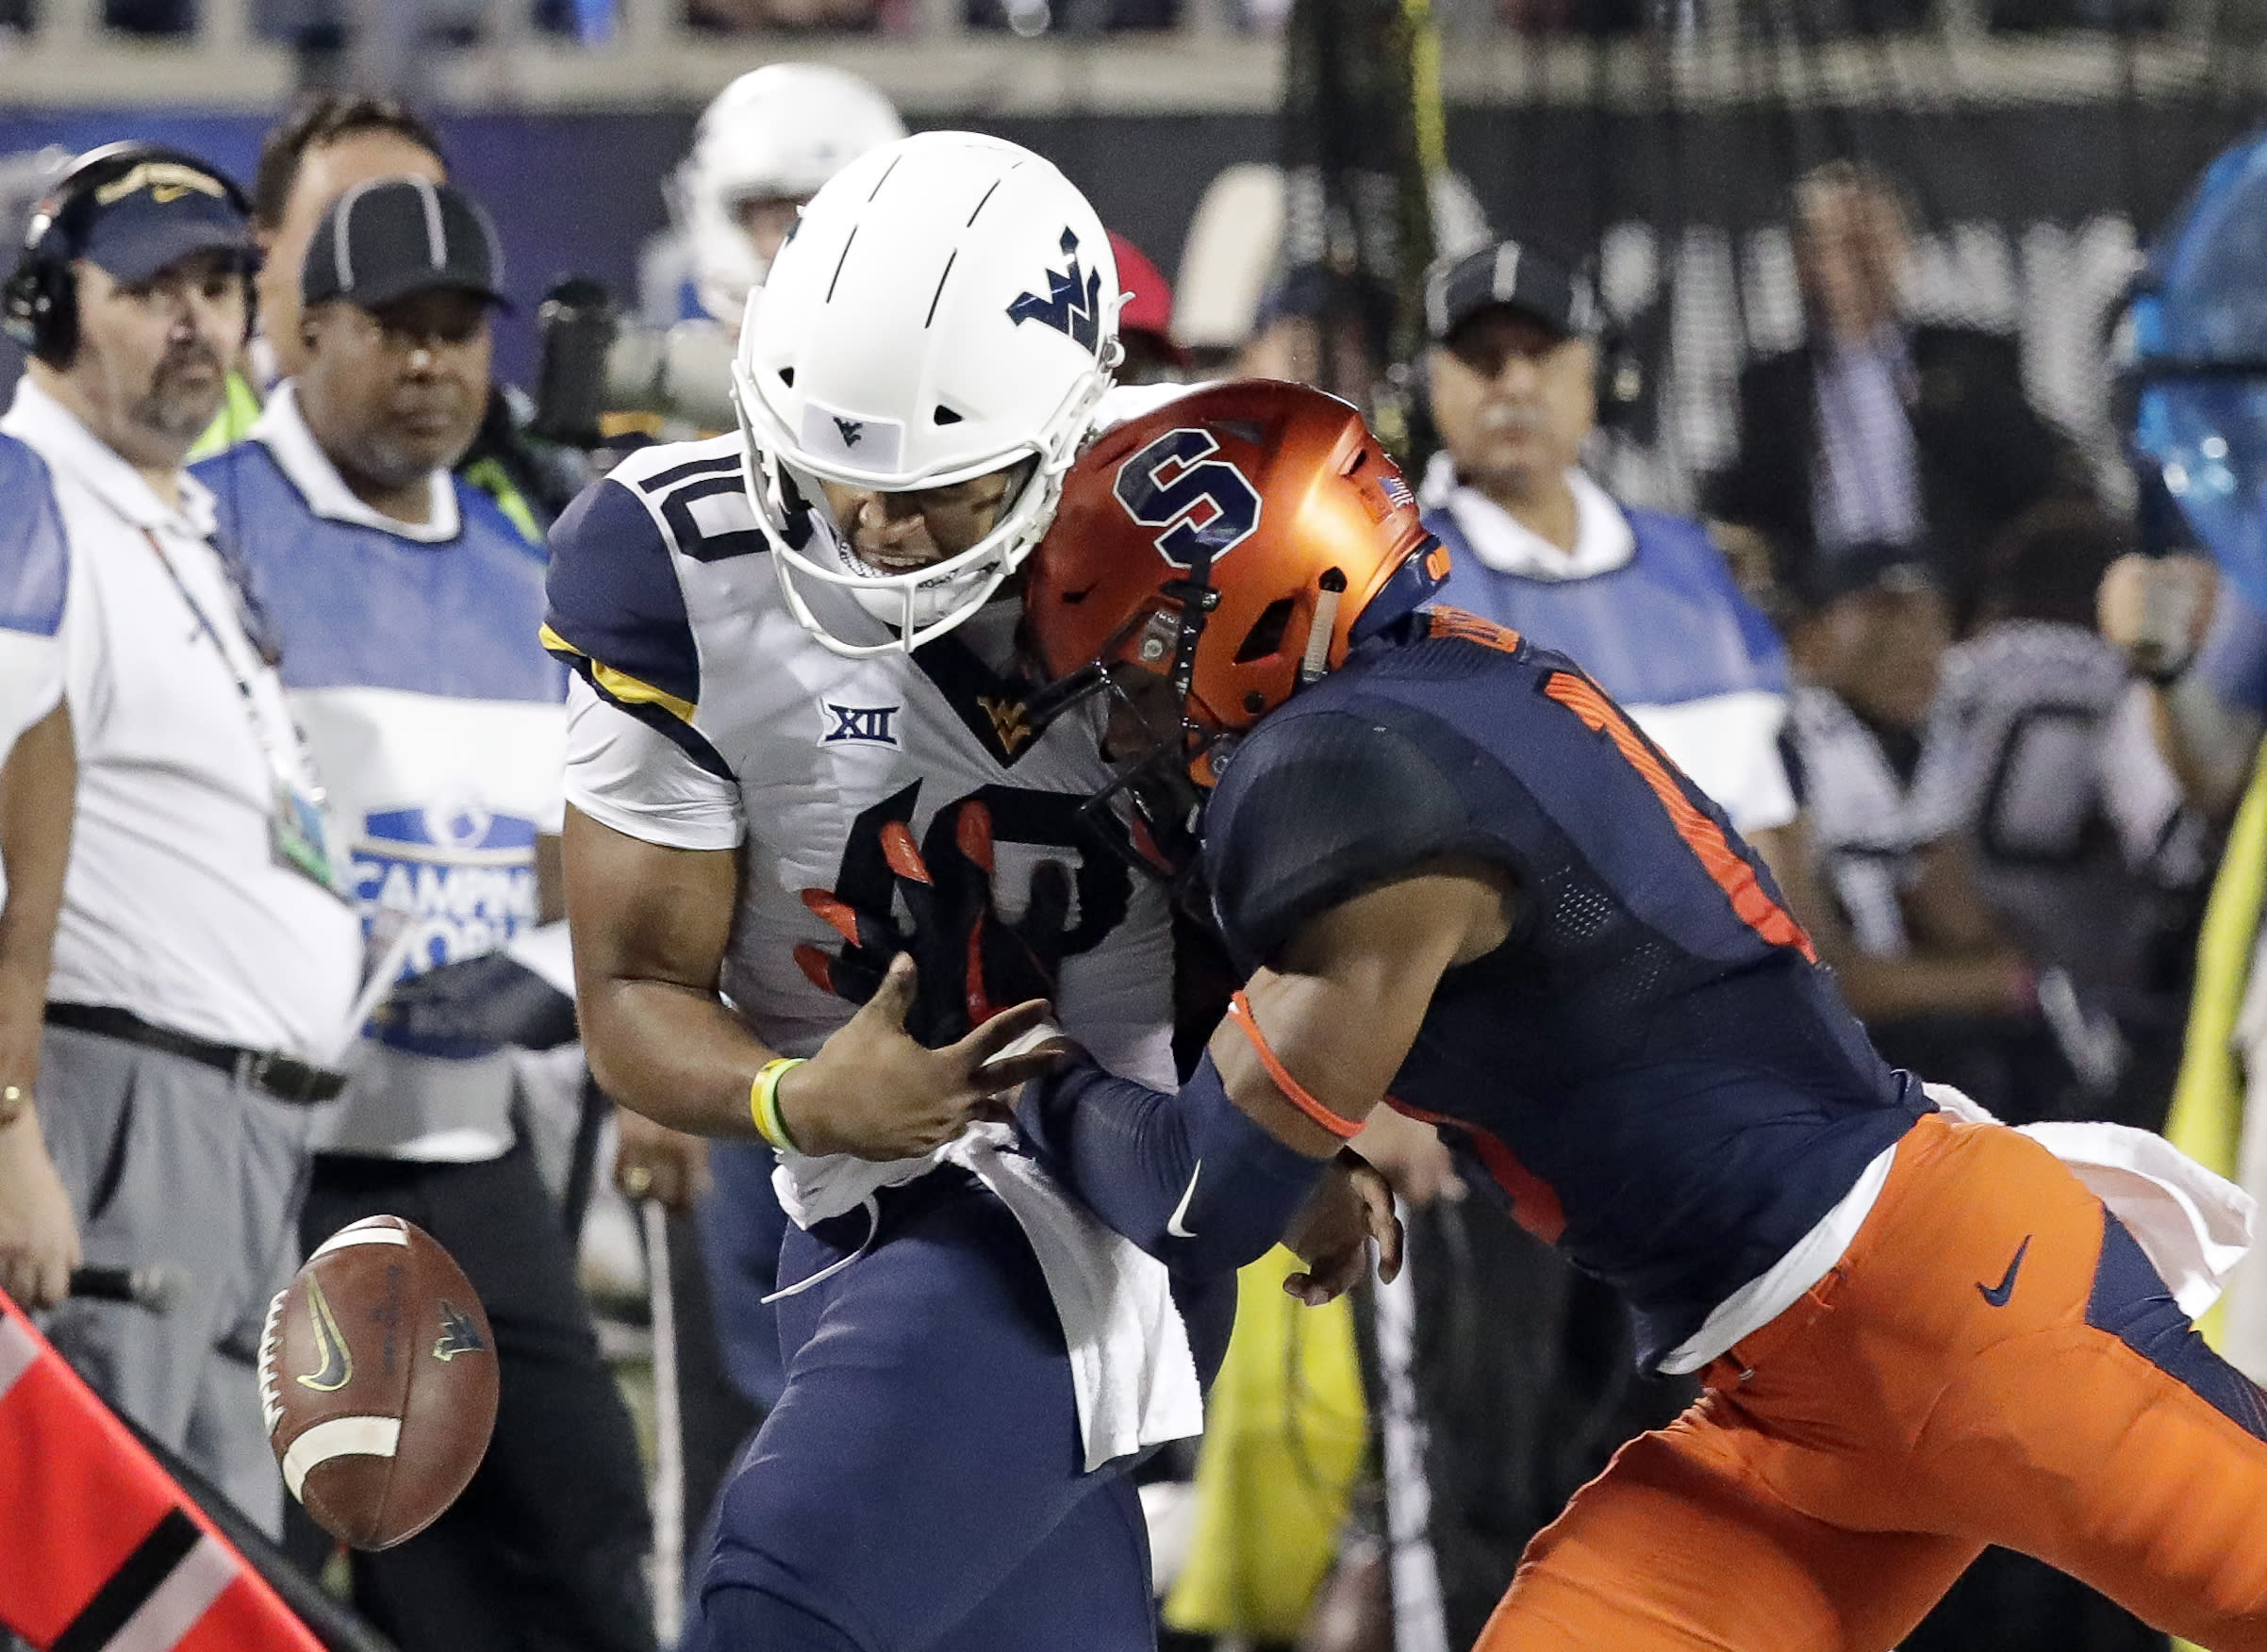 FILE - In this Dec. 28, 2018, file photo, Syracuse defensive back Andre Cisco, right, breaks up a pass intended for West Virginia quarterback Trey Lowe III (10) during the first half of the Camping World Bowl NCAA college football game in Orlando, Fla. Heres a switch for Syracuse coach Dino Babers _ defense rules. Known for his uptempo offenses, the fourth-year coach is looking to his defense to help lift the No. 22 Orange to even greater heights this fall. (AP Photo/John Raoux, File)